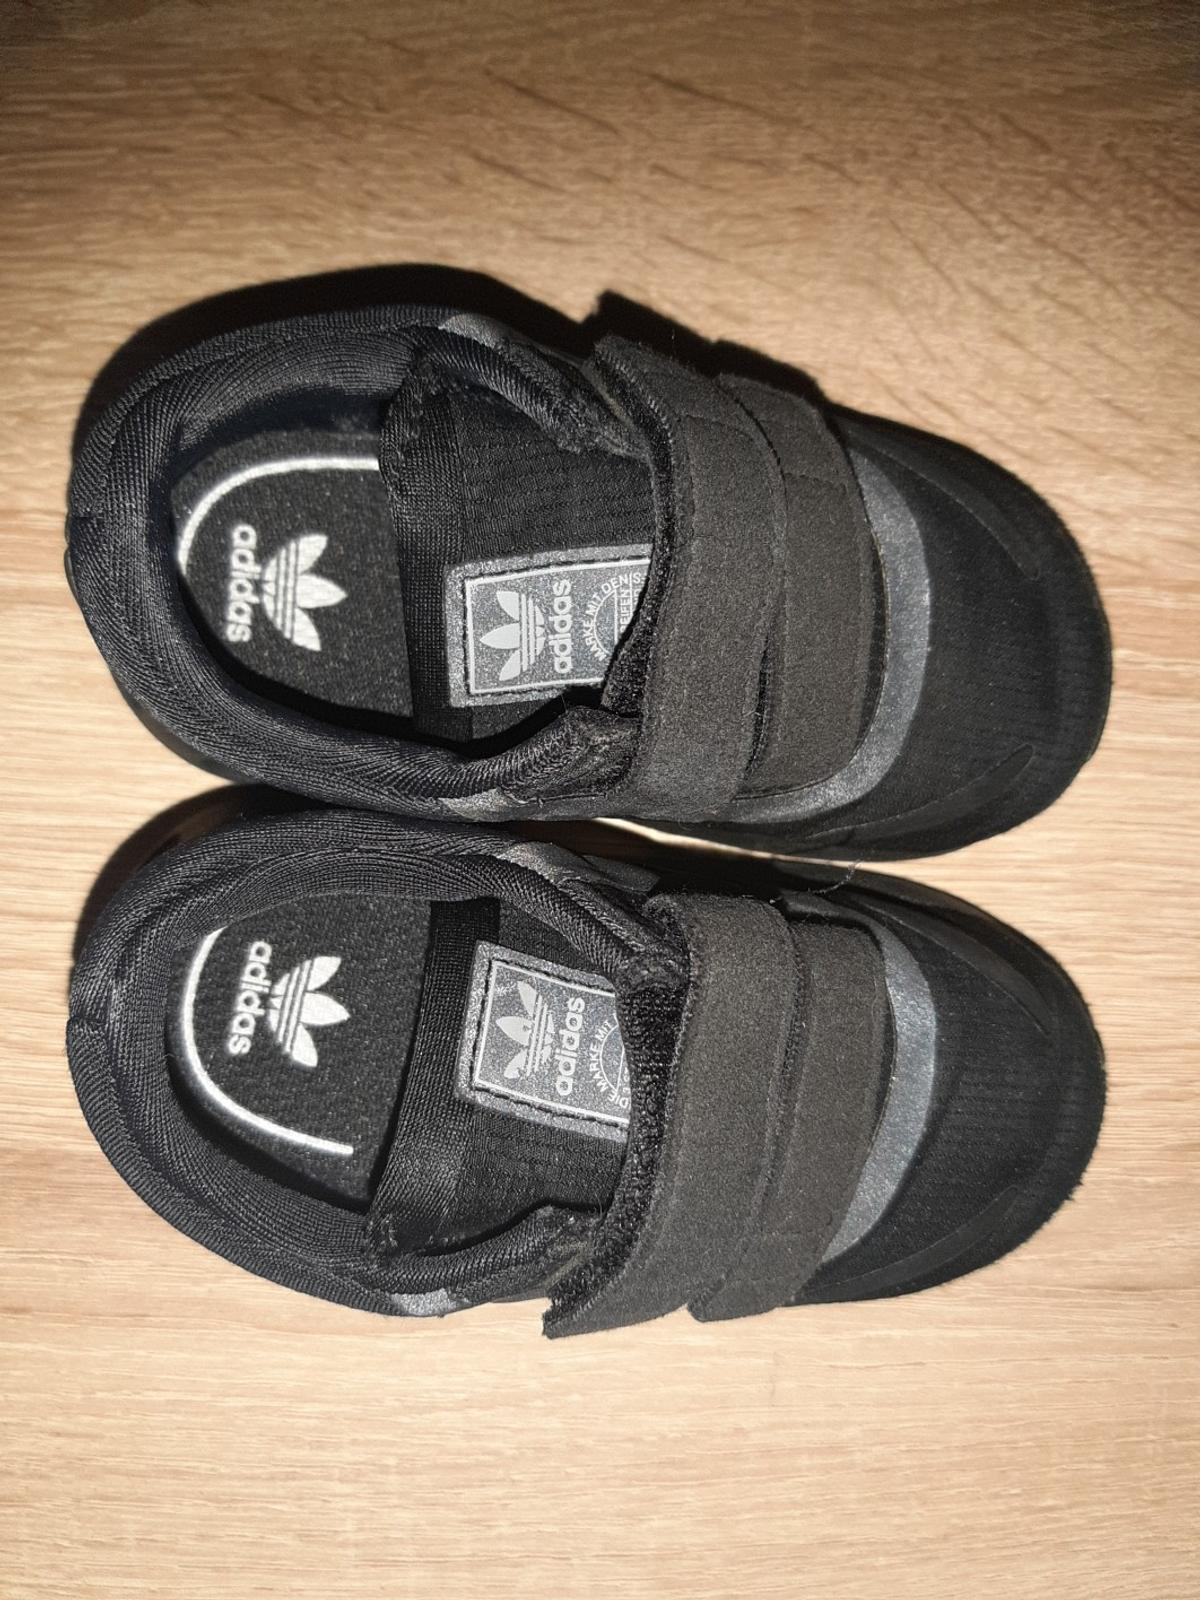 Adidas Schuhe los angeles in 53119 Bonn for €20.00 for sale